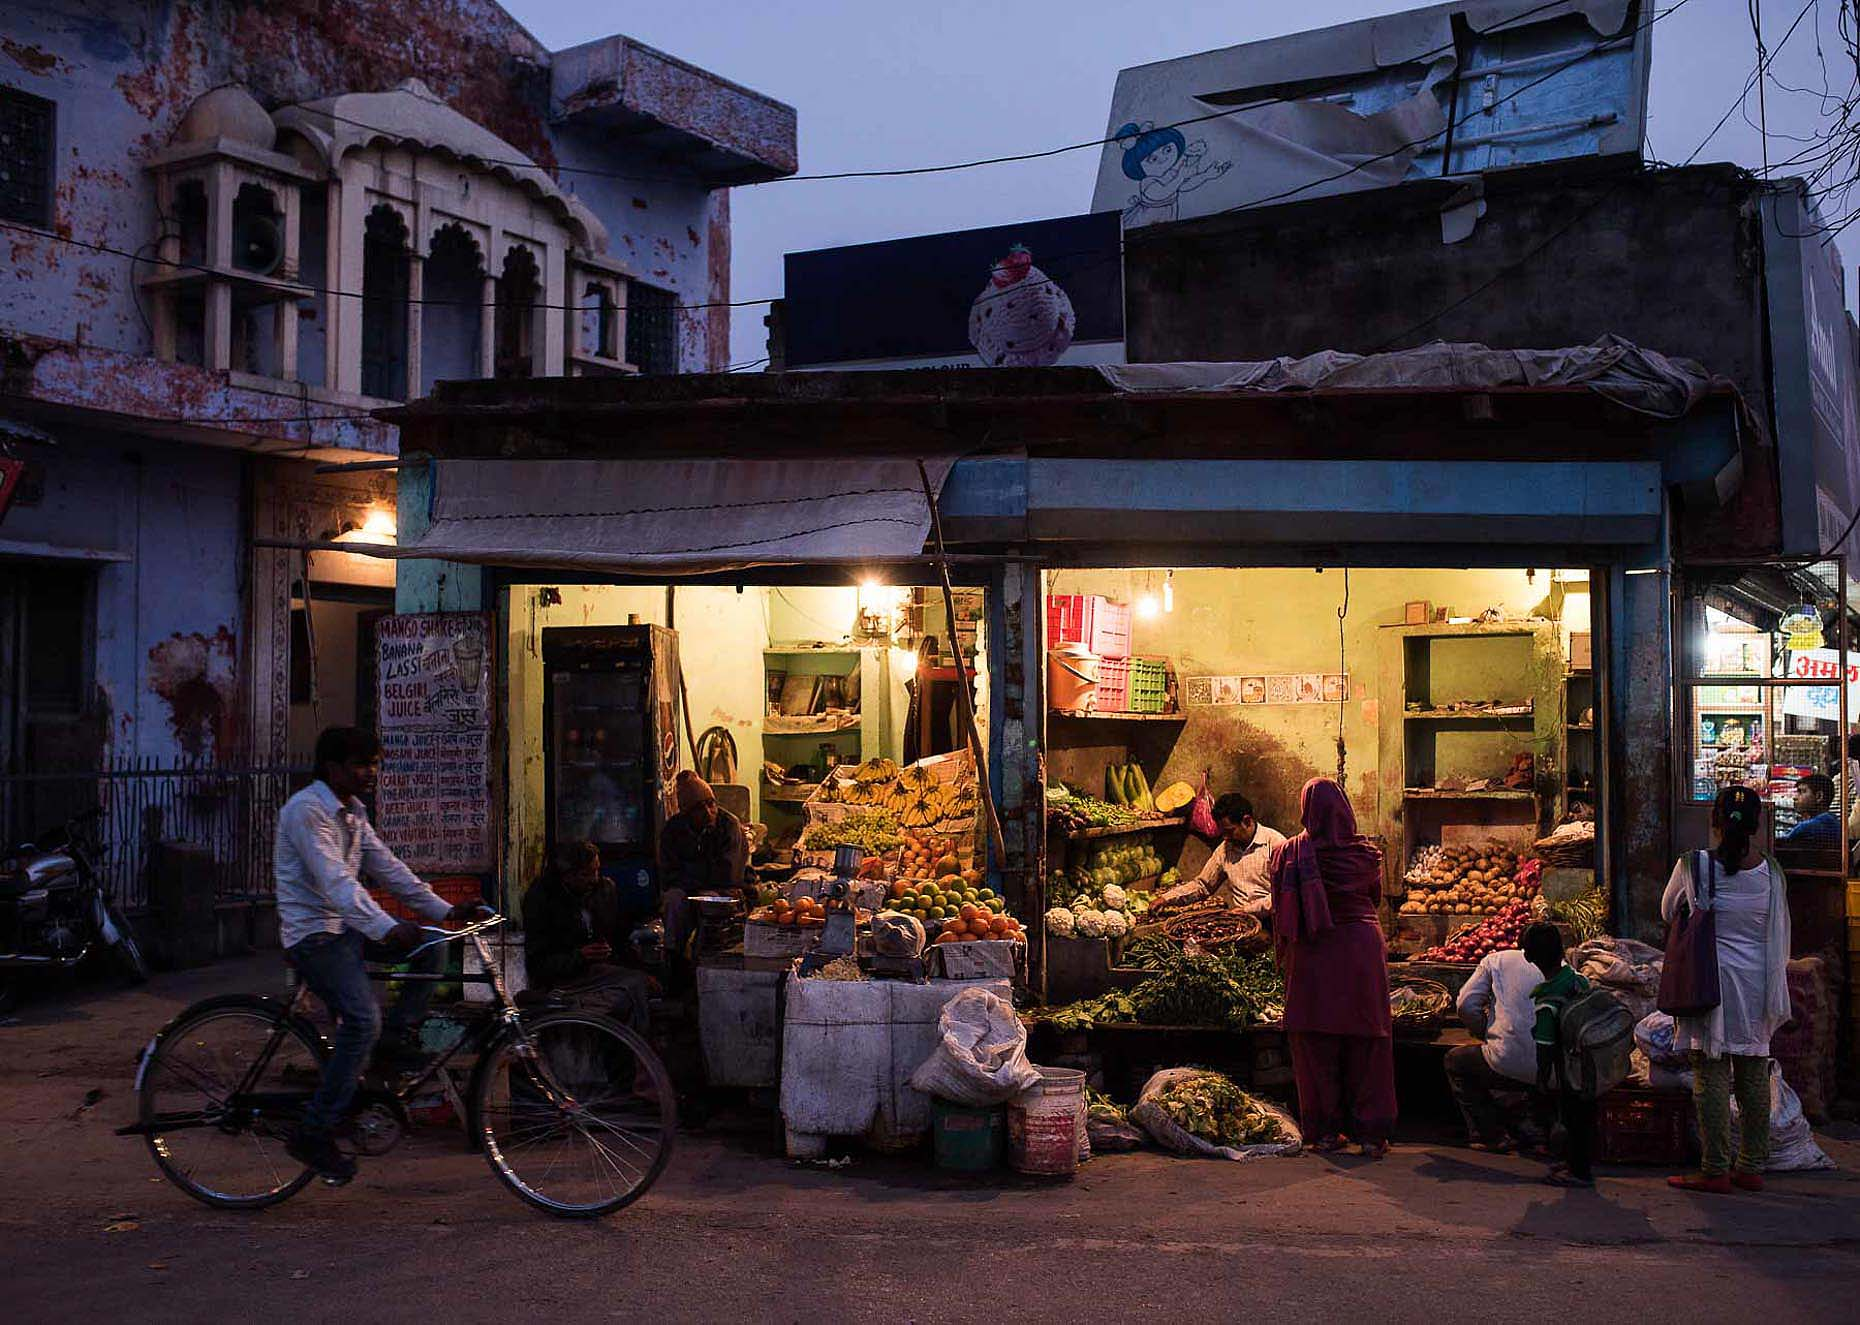 street-scene-agra-india-twilight-greengrocer-15